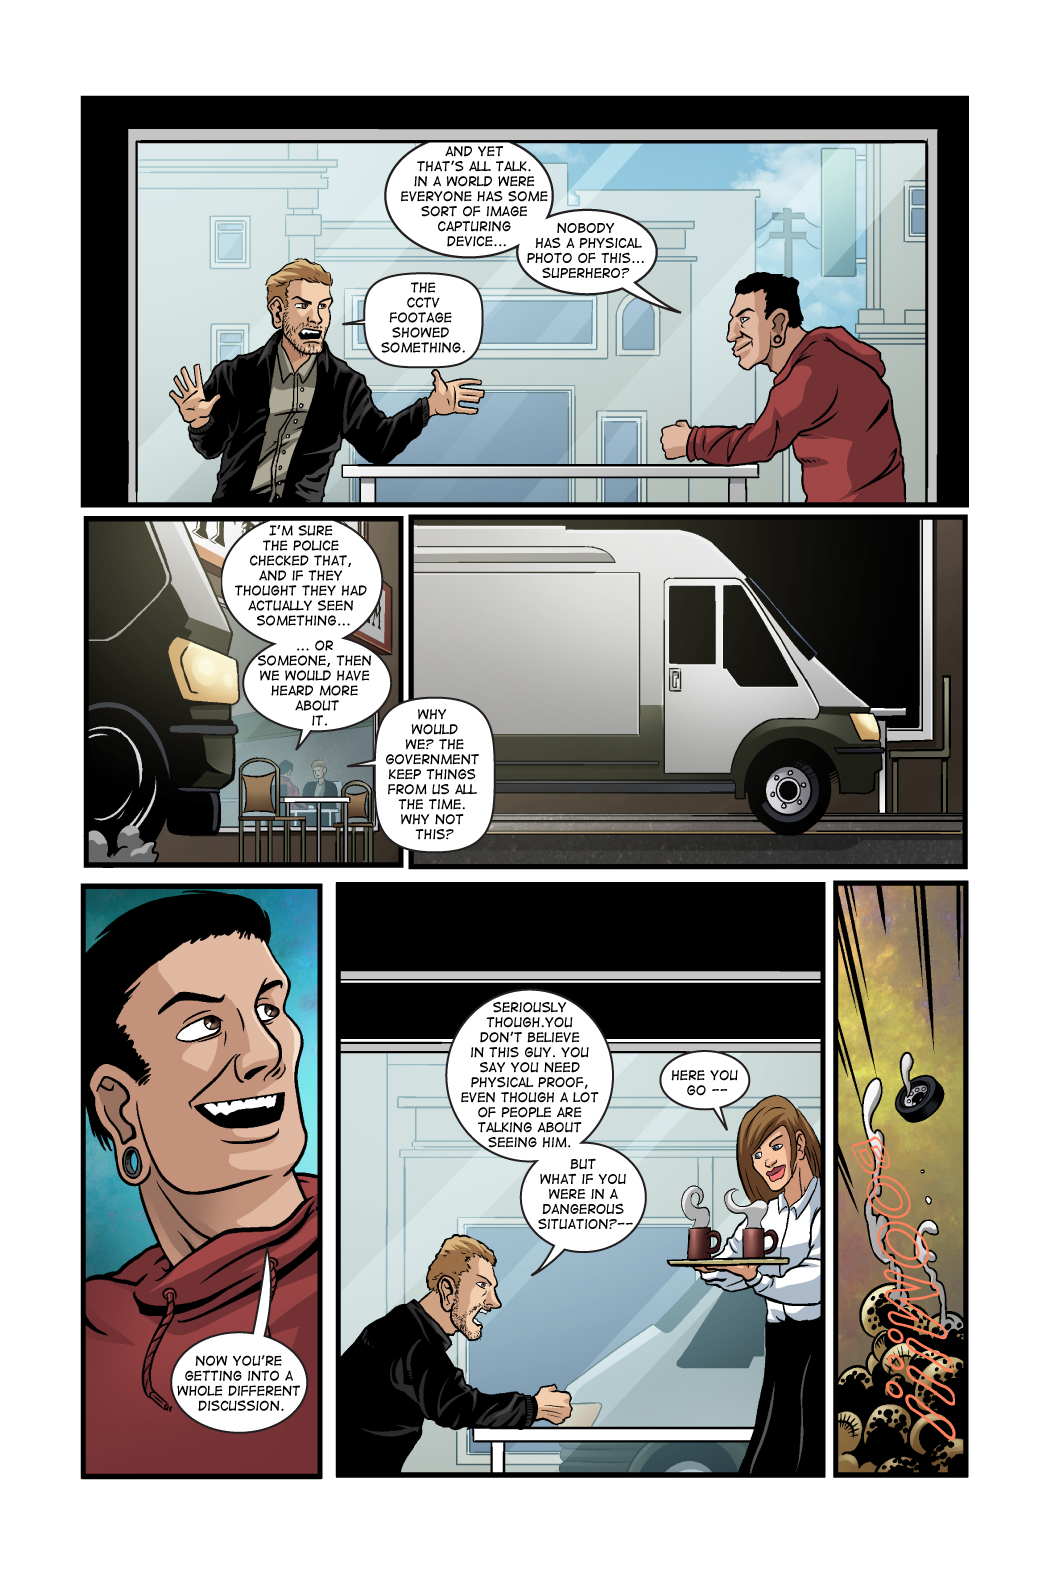 MIRACLE (Page 3)